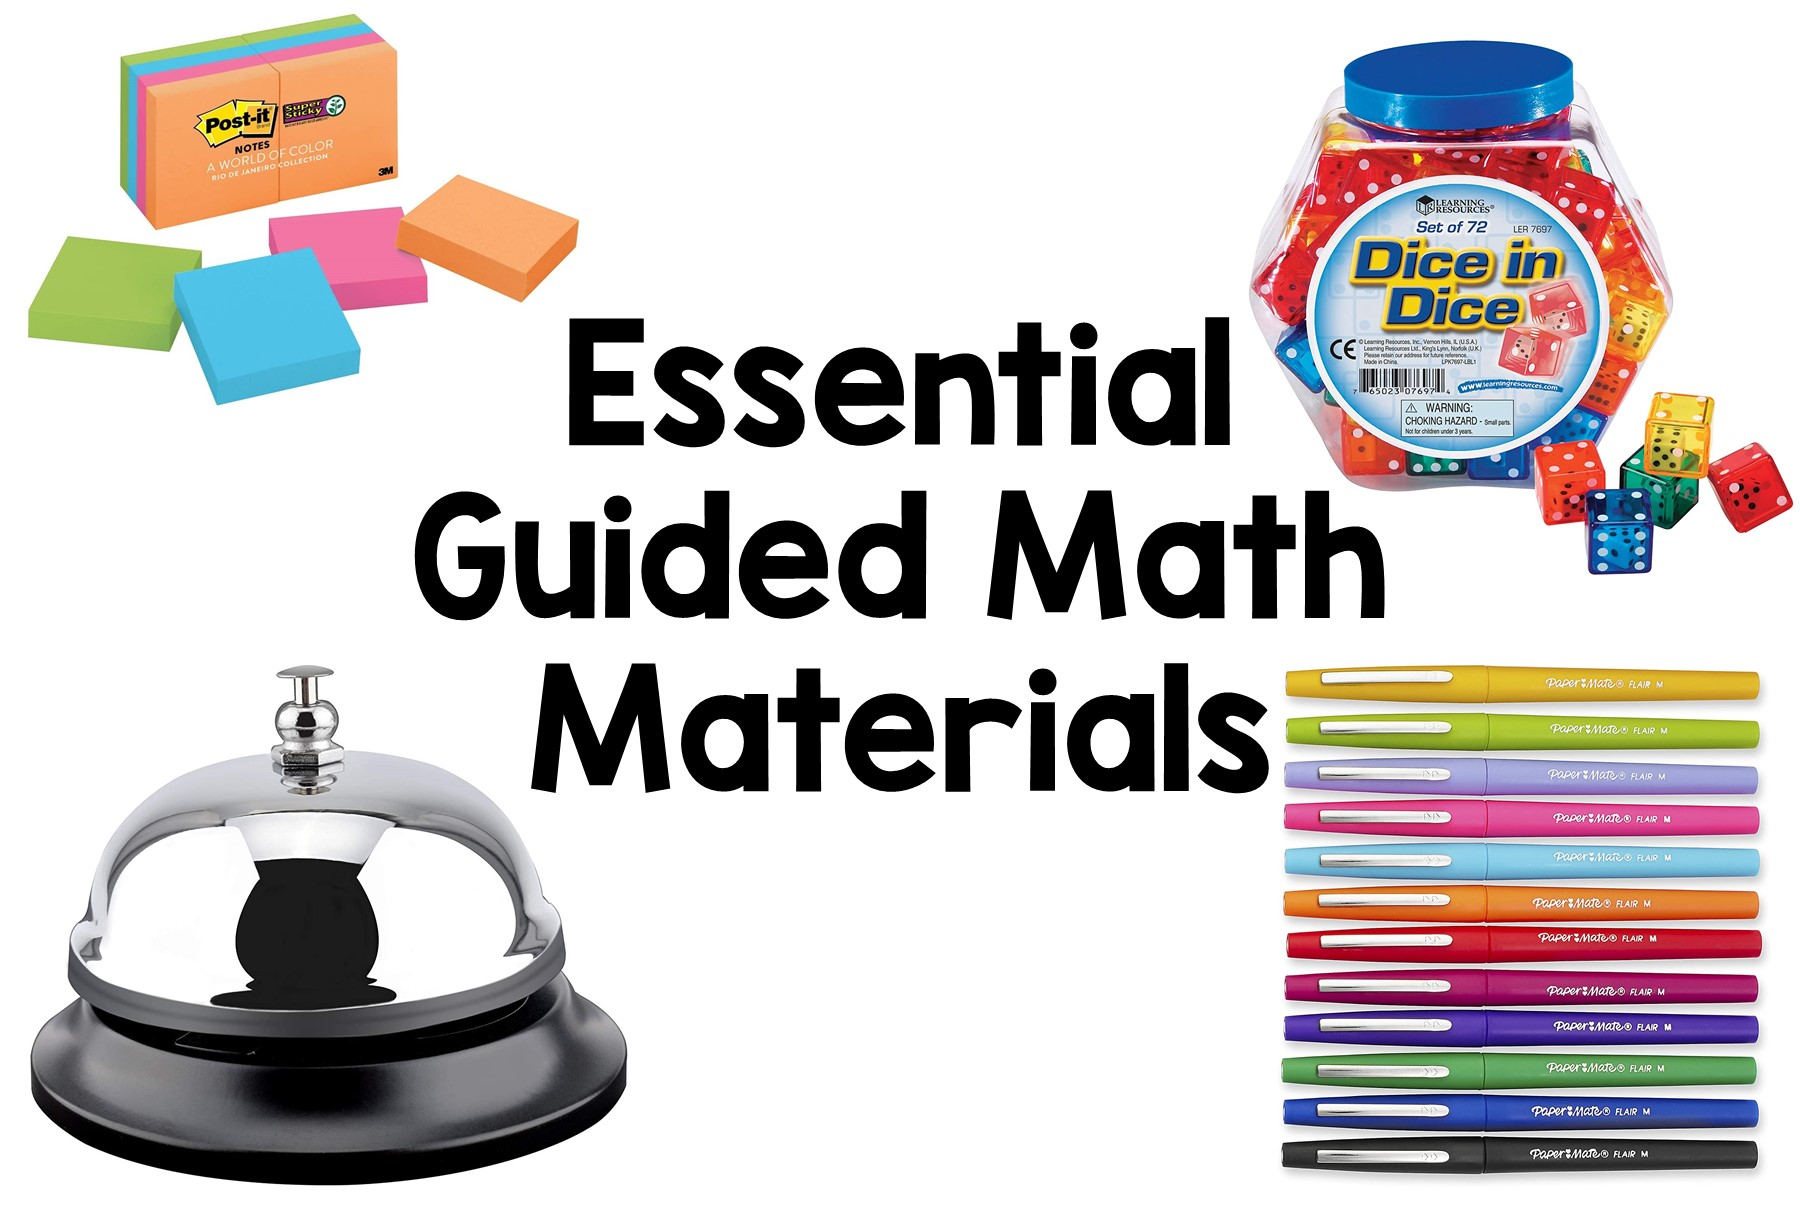 My Favorite Guided Math Materials